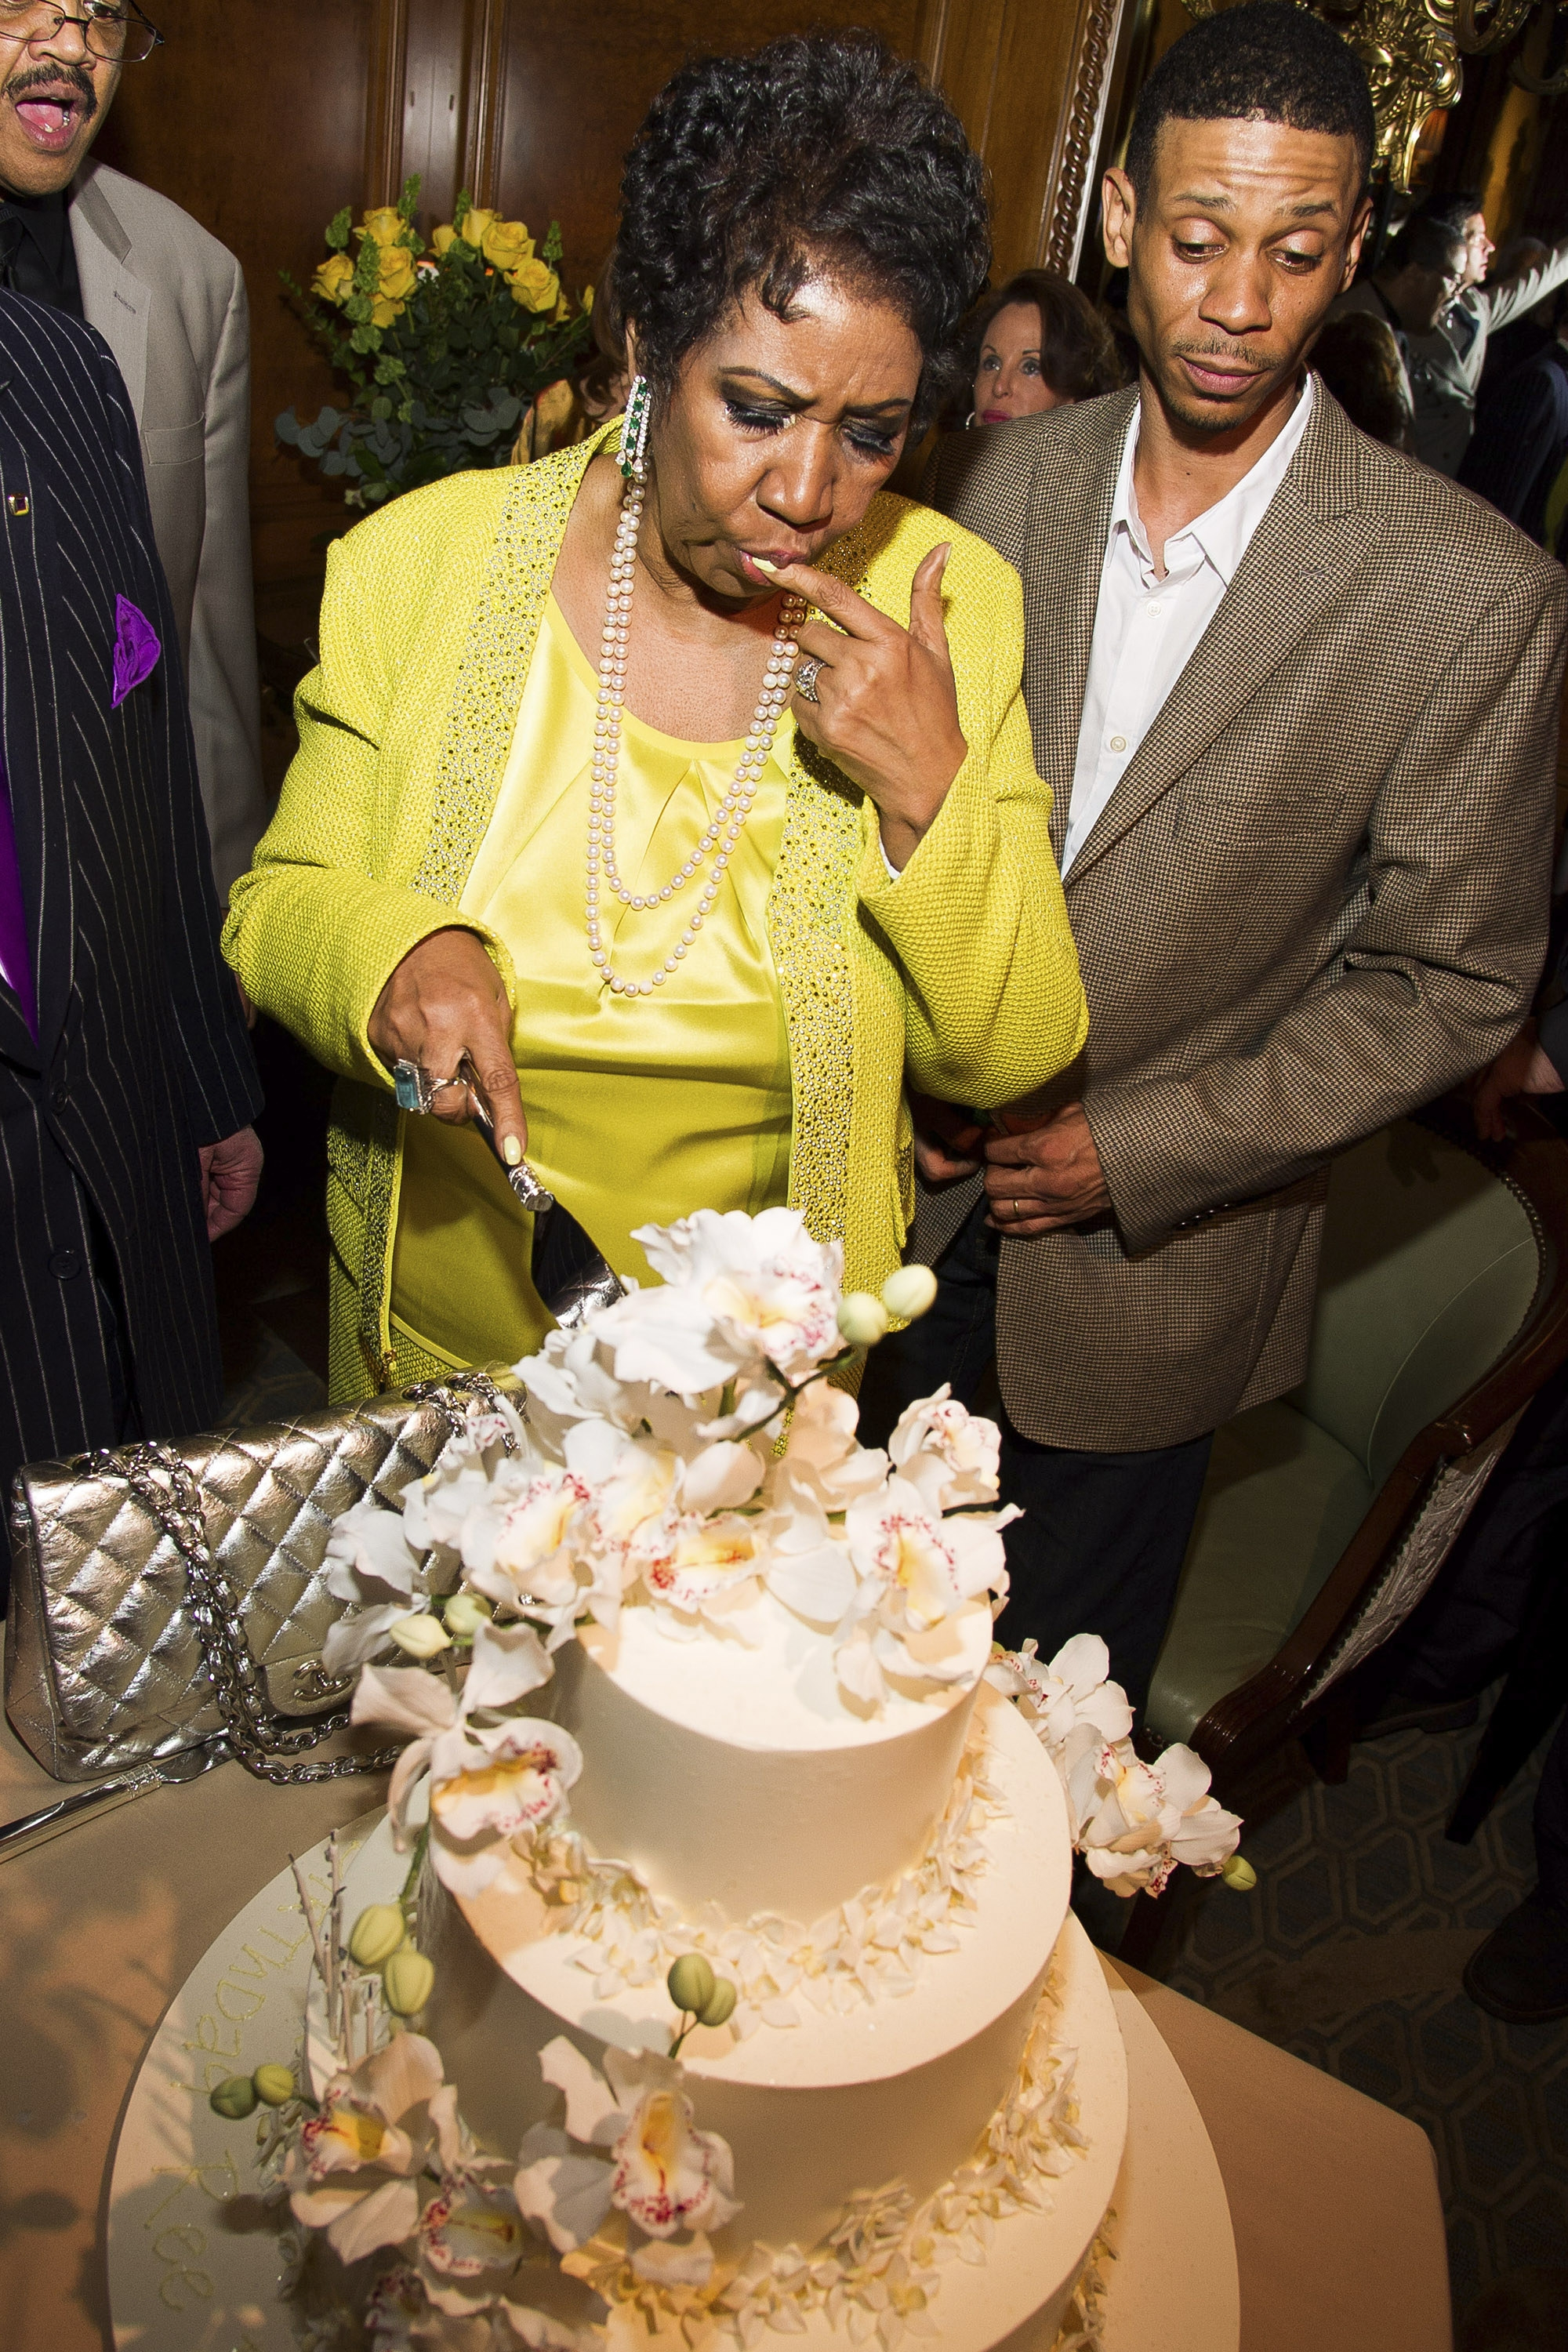 Aretha Franklin, the Queen of Soul,  had her son, Kecalf Cunningham, at her side for her 72nd birthday celebration Saturday in New York.